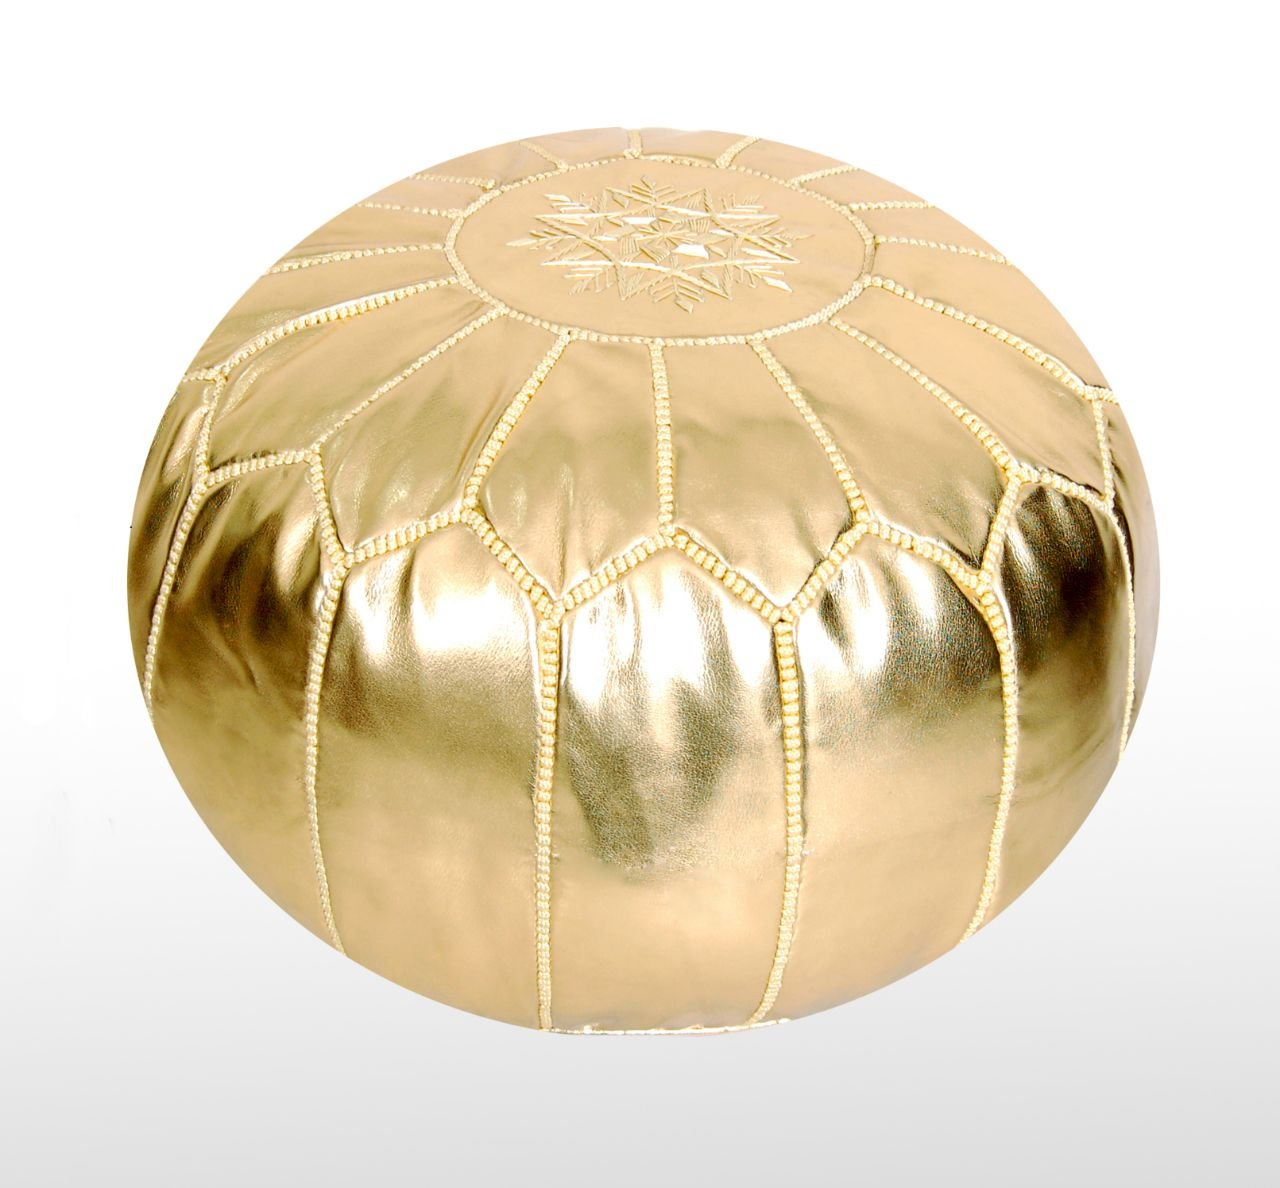 Moroccan Pouf Ottoman Footstool (Faux Leather) Genuine Hand-Stitched Seating | Unstuffed | Living Room, Bedroom, Sitting Area | Gold | Exclusive Designs